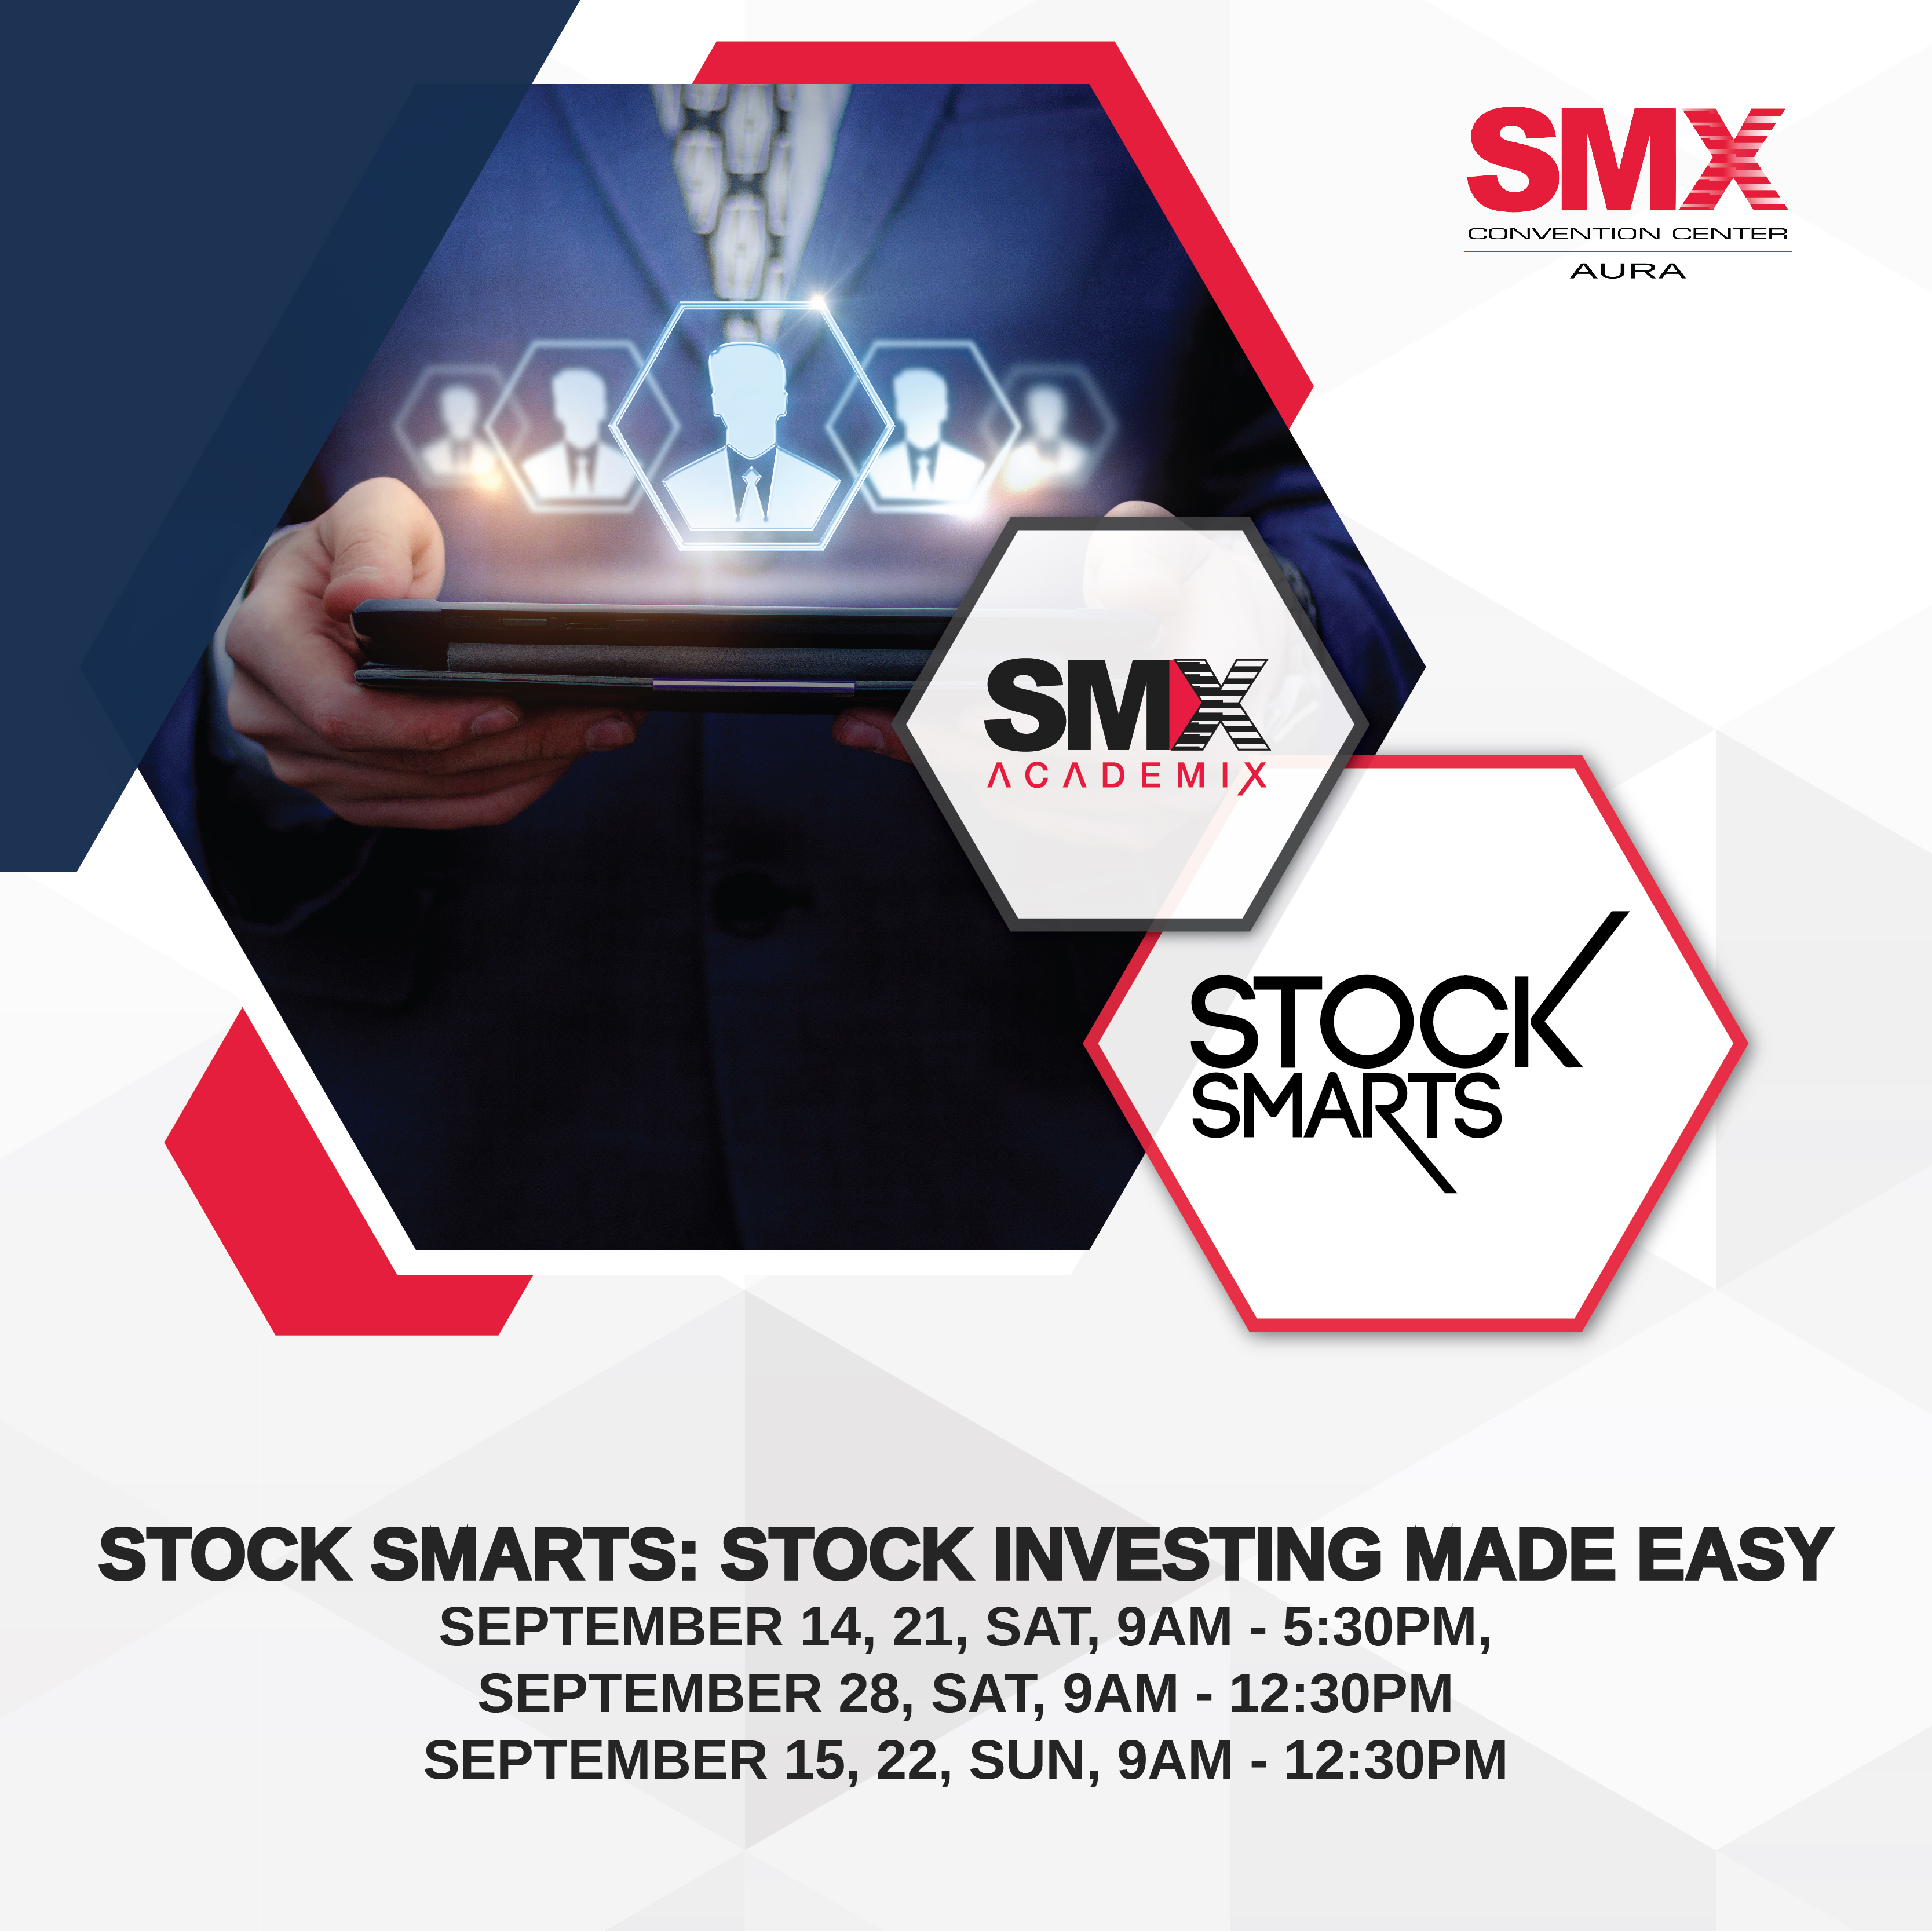 Stock Smarts: Stock Investing Made Easy by Marvin Germo